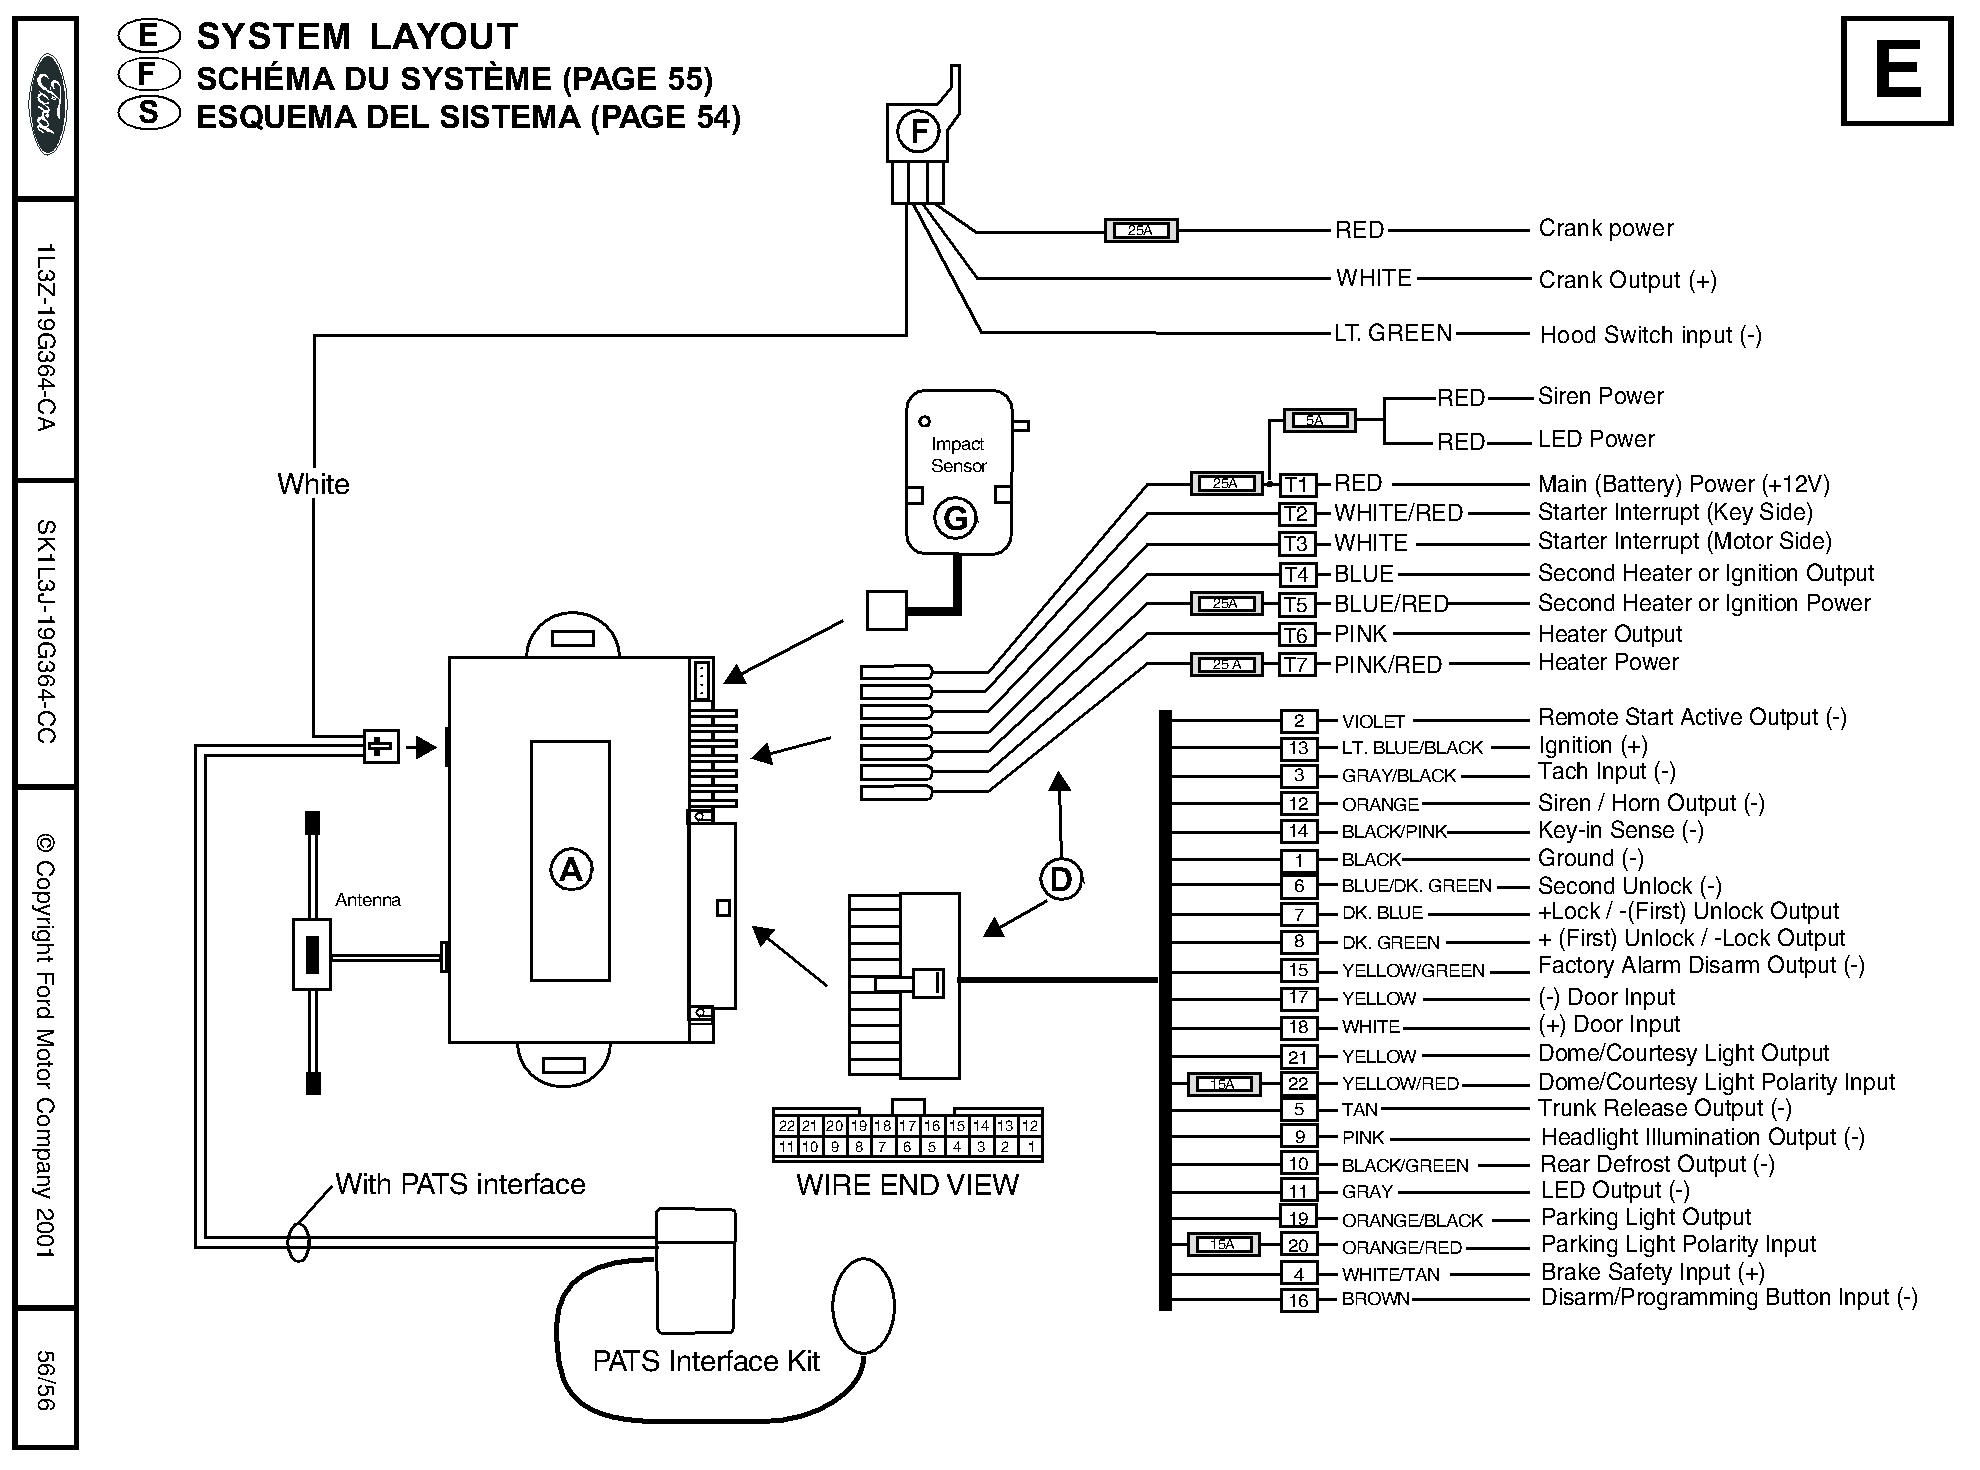 1998 saturn sl1 wiring diagram 1998 discover your wiring diagram 2001 saturn starter relay location 2005 saturn wiring diagram furthermore 2000